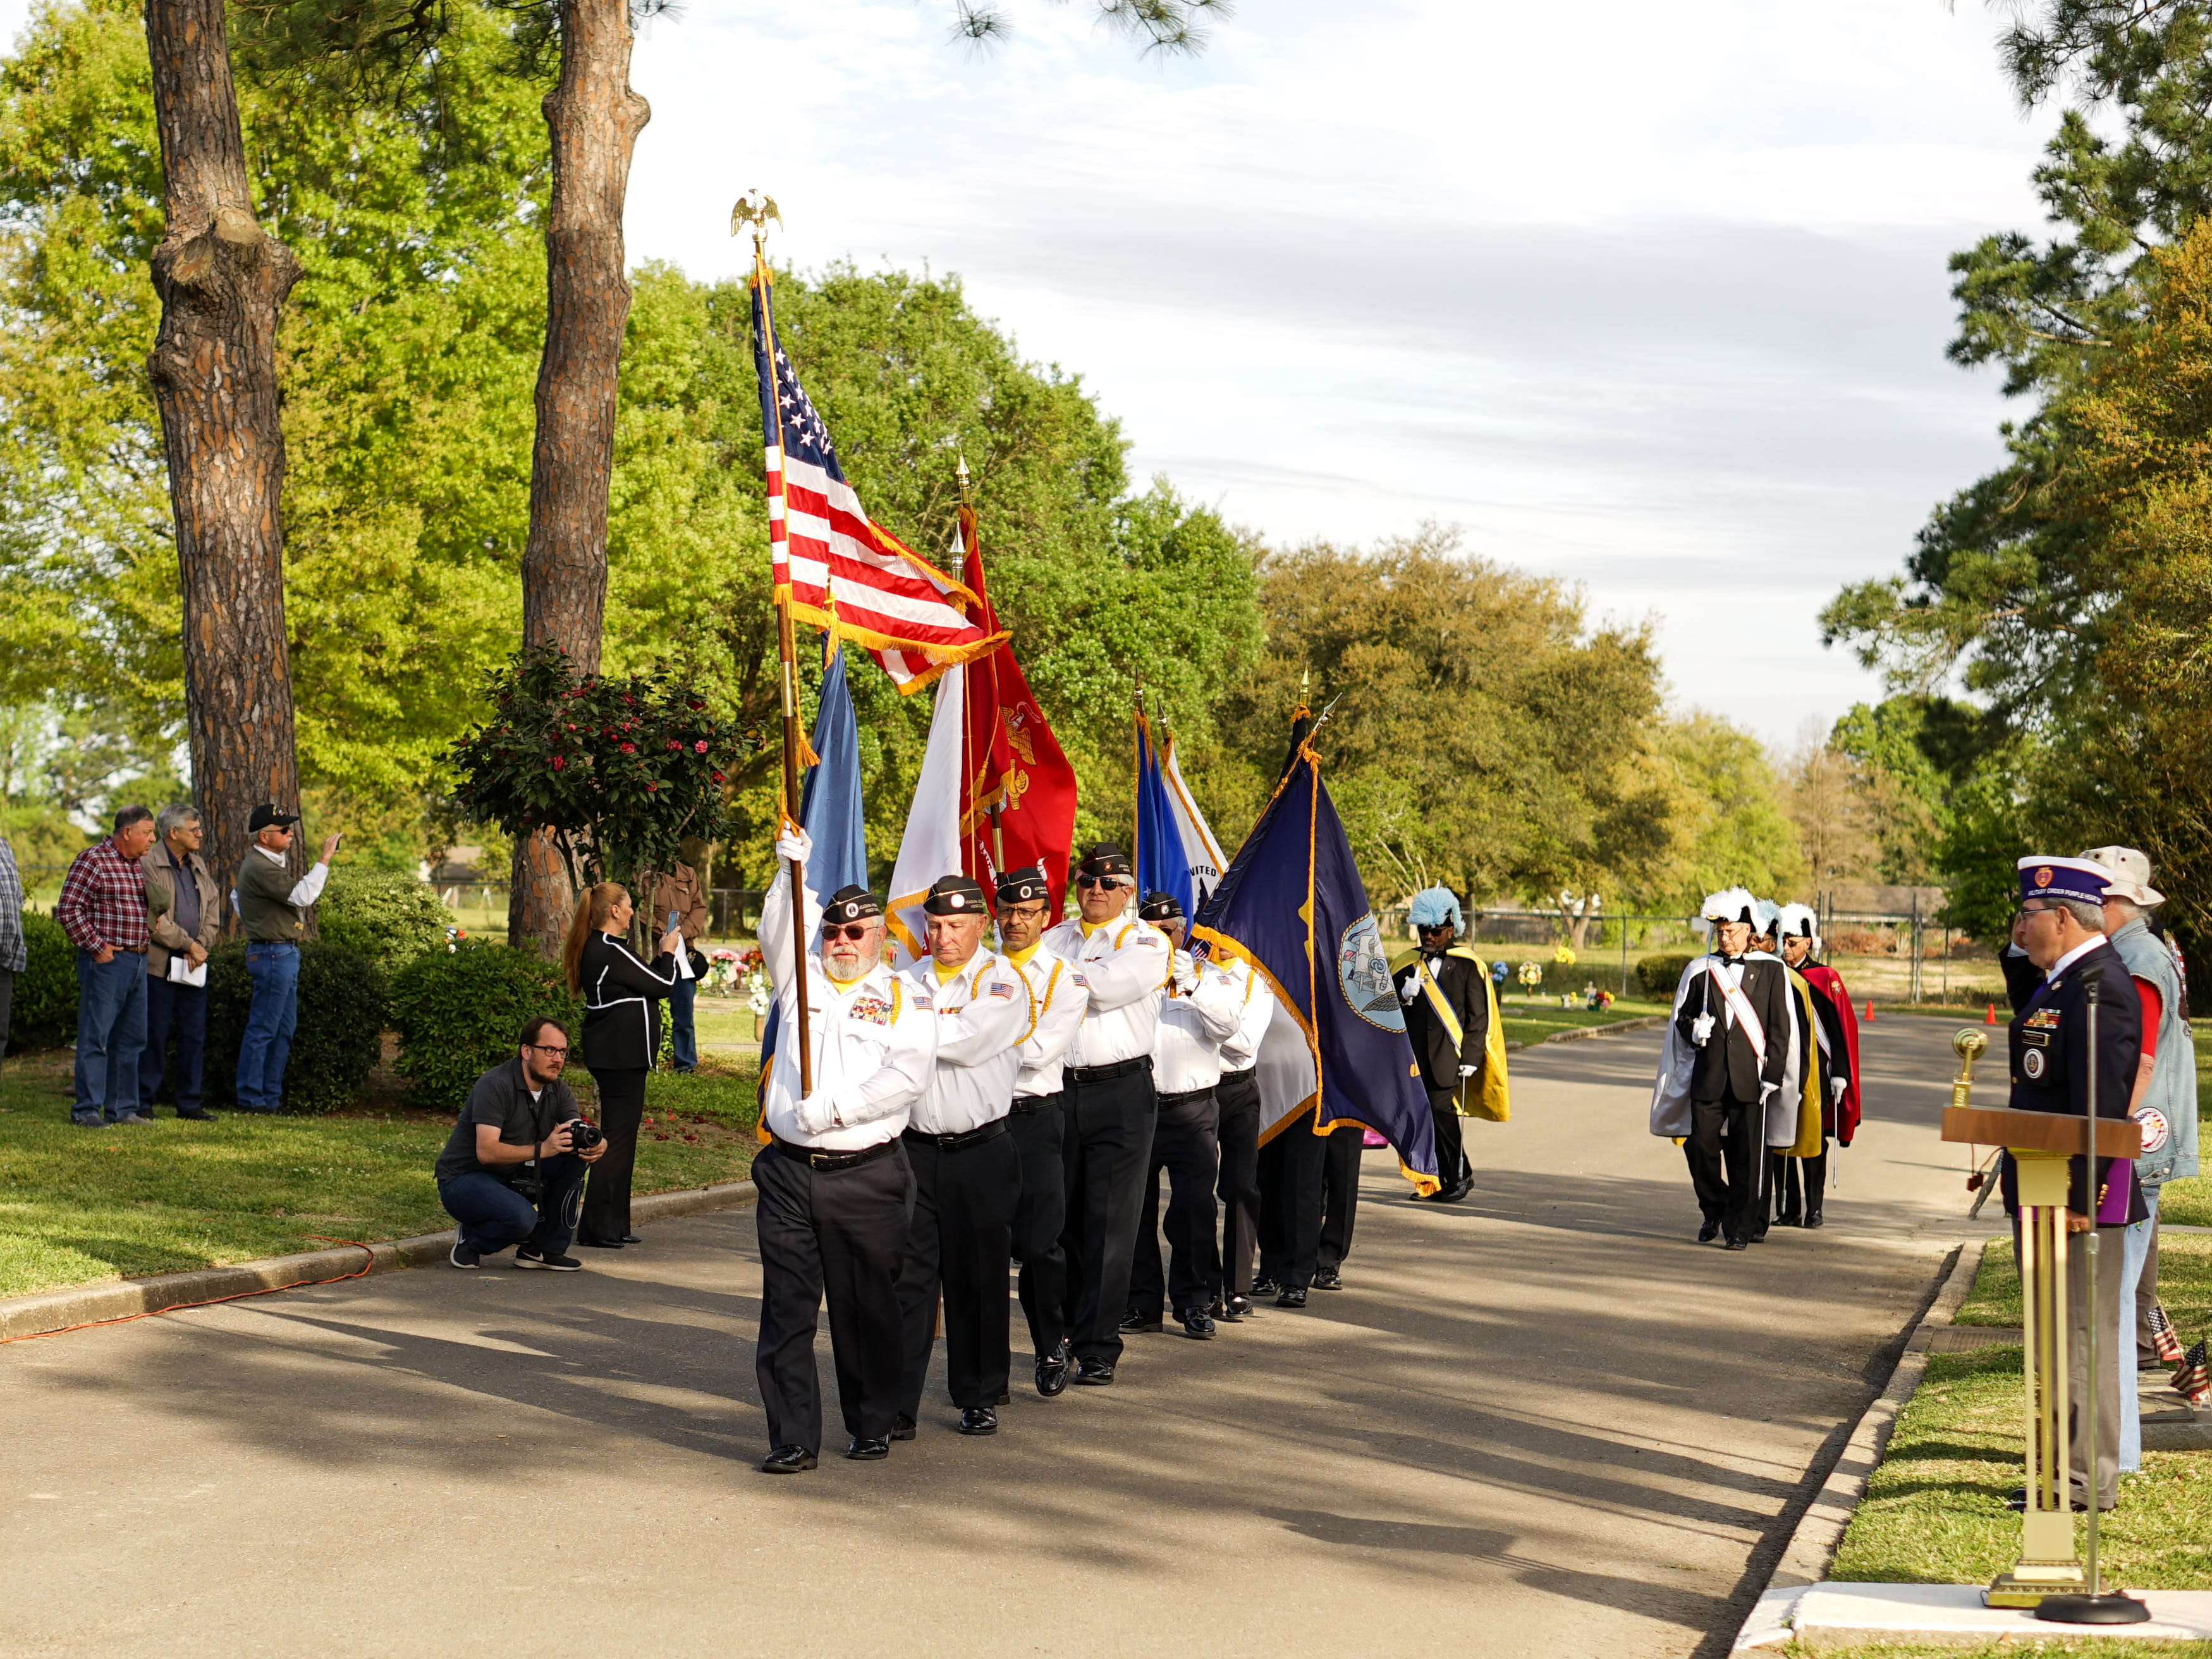 """Members of the Acadiana Veterans Honor Guard and the Knights of Columbus process with the American flag and the flags of the U.S. Armed Forces during the """"Welcome Home Vietnam Veterans"""" event at Fountain Memorial Funeral Home and Cemetery in Lafayette on Friday, March 29, 2019. The event honoring those who served in the Vietnam War also featured two speakers and a wreath-laying ceremony."""